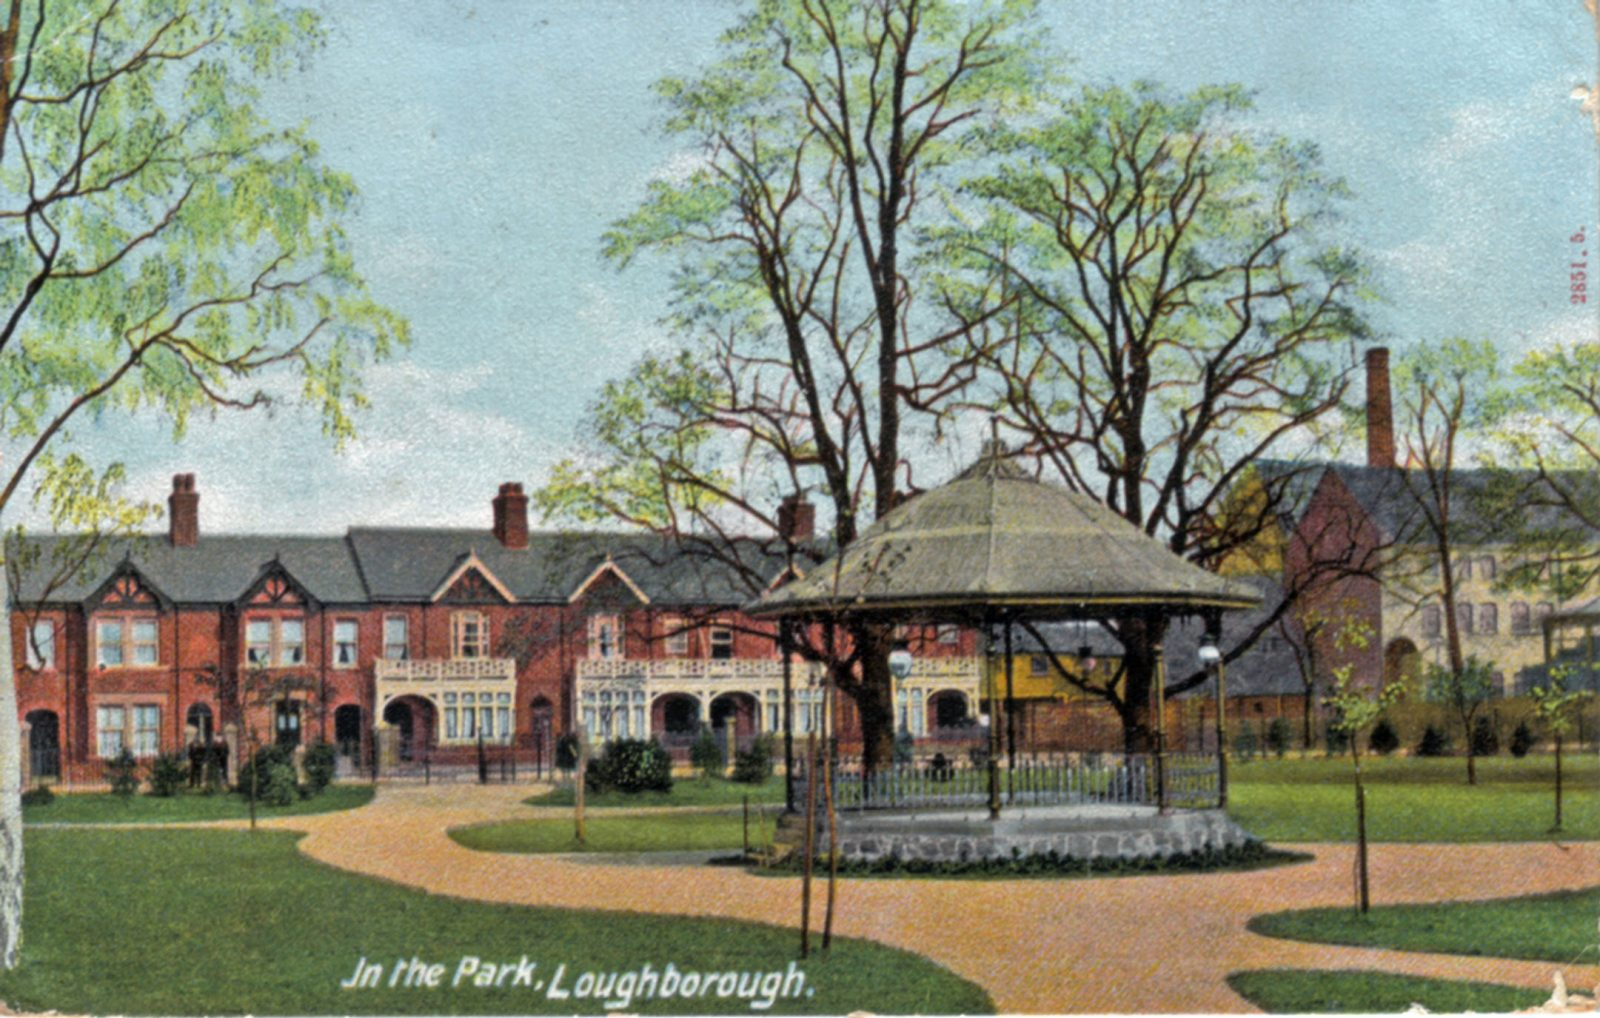 Queens Park, Loughborough. 1901-1920: General view of the park and bandstand - erected in 1902. Franked 1904 (File:1010)